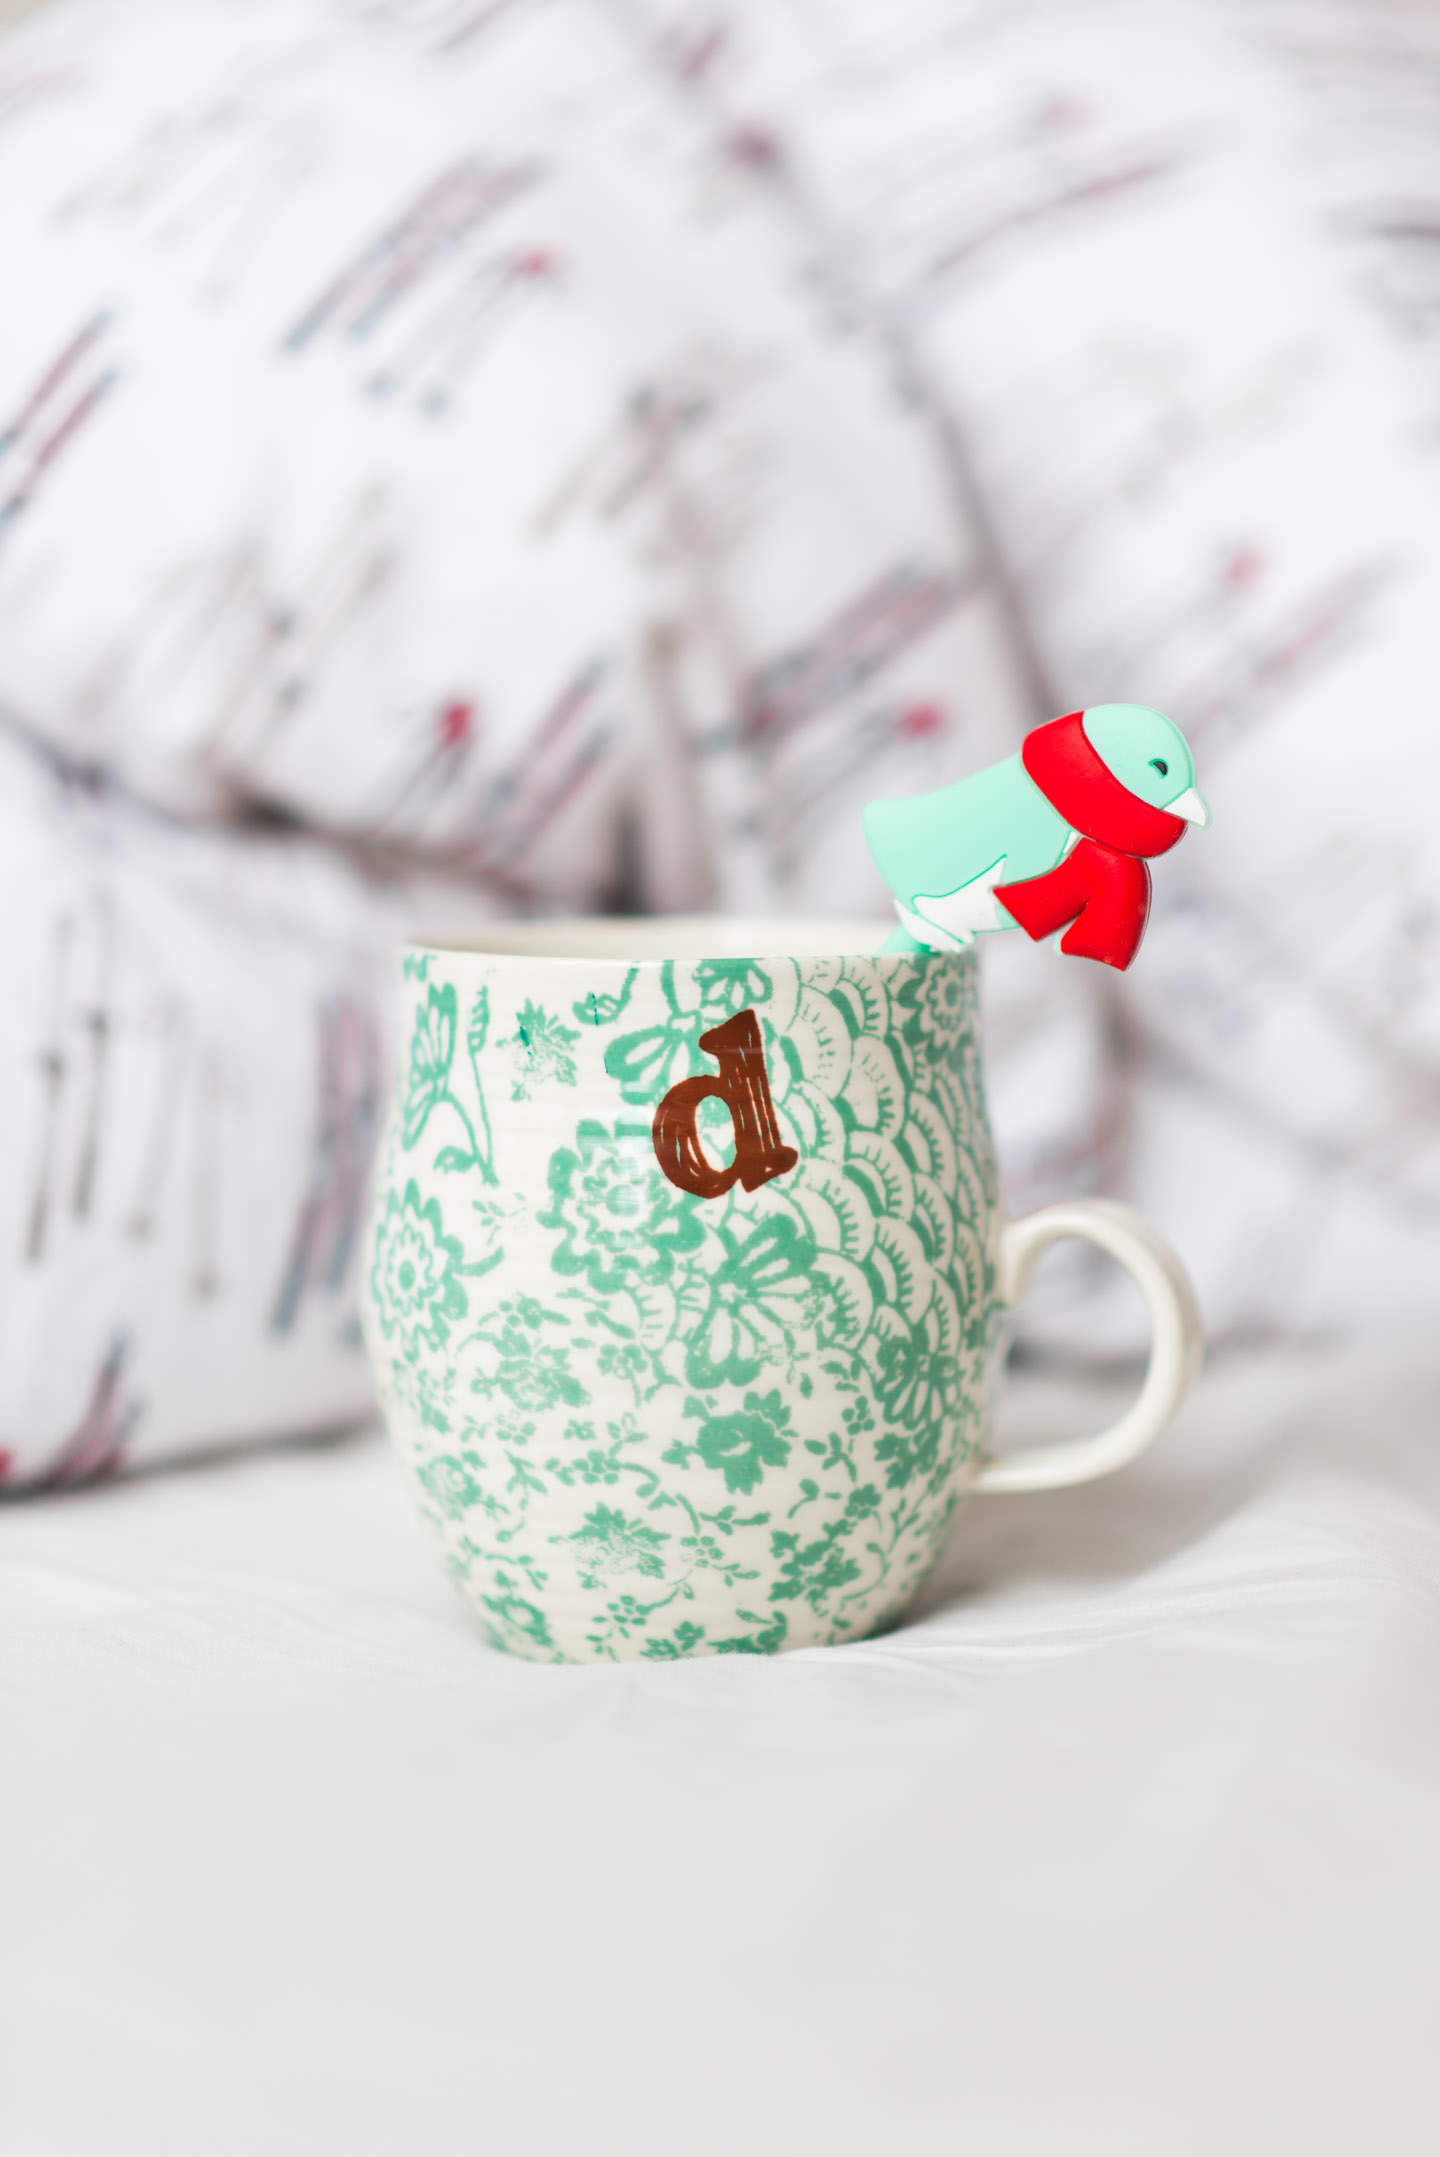 Blog-Mode-And-The-City-Lifestyle-Cadeaux-Noel-Anthropologie